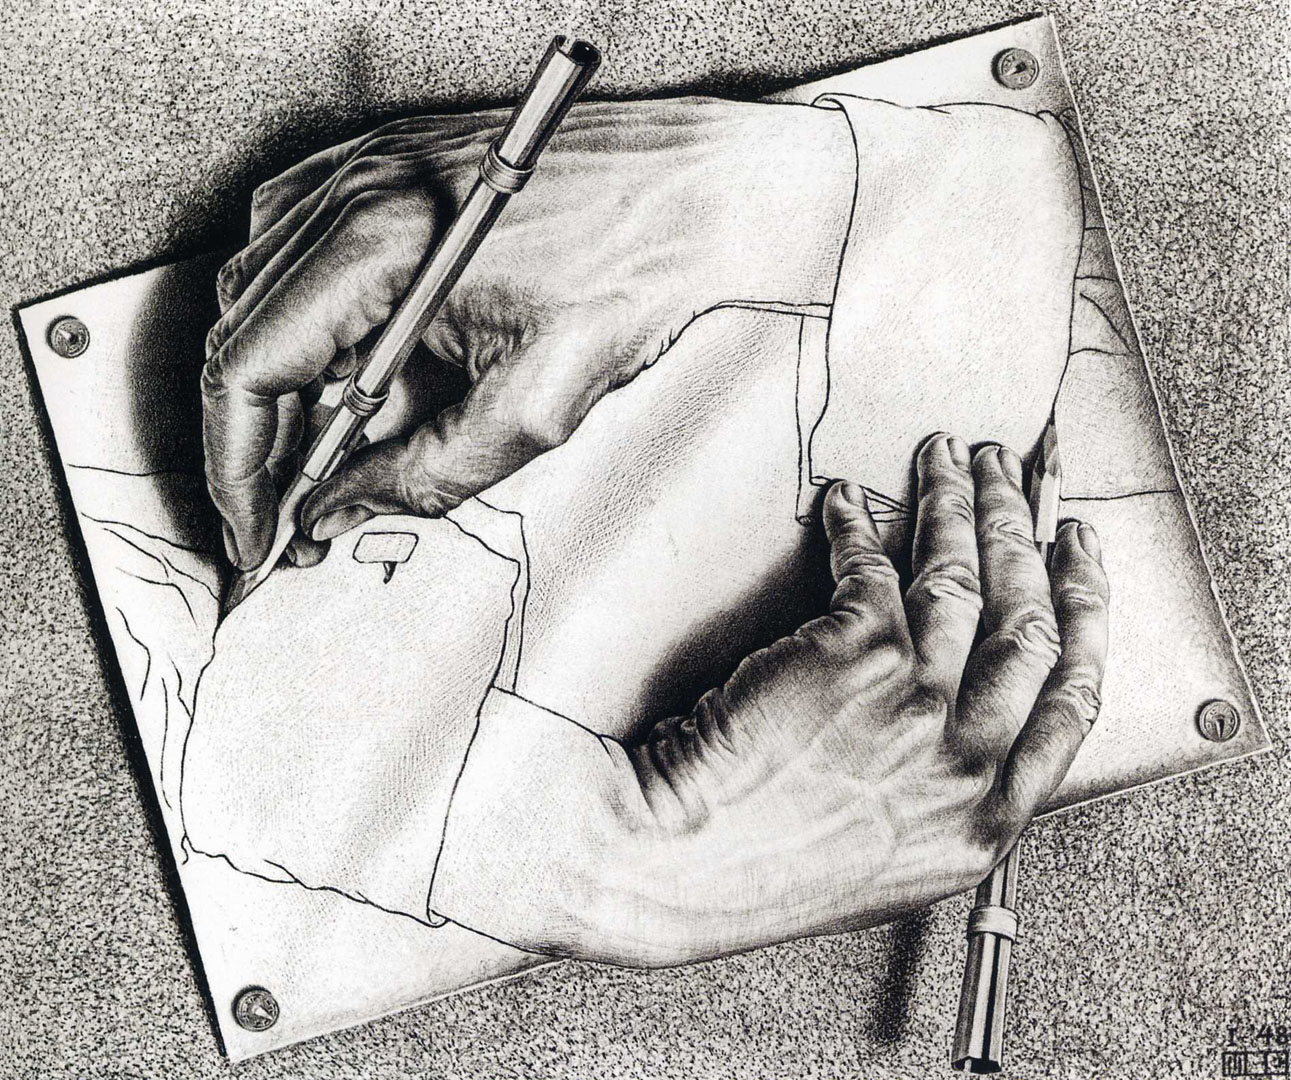 Drawing of hands optical illusion